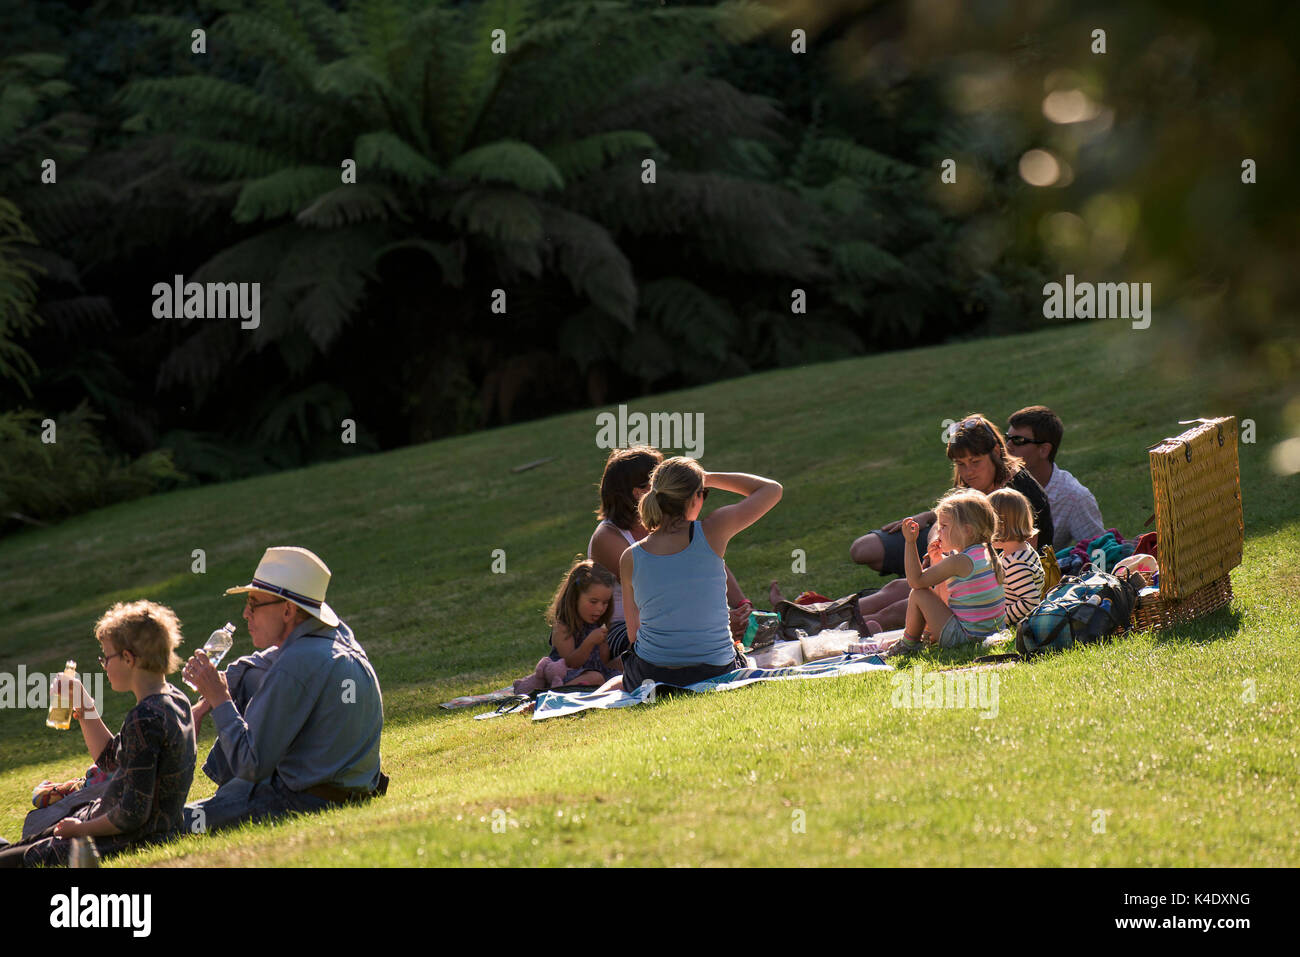 Picnic - families enjoying a picnic on the lawn at Trebah Garden in Cornwall. - Stock Image